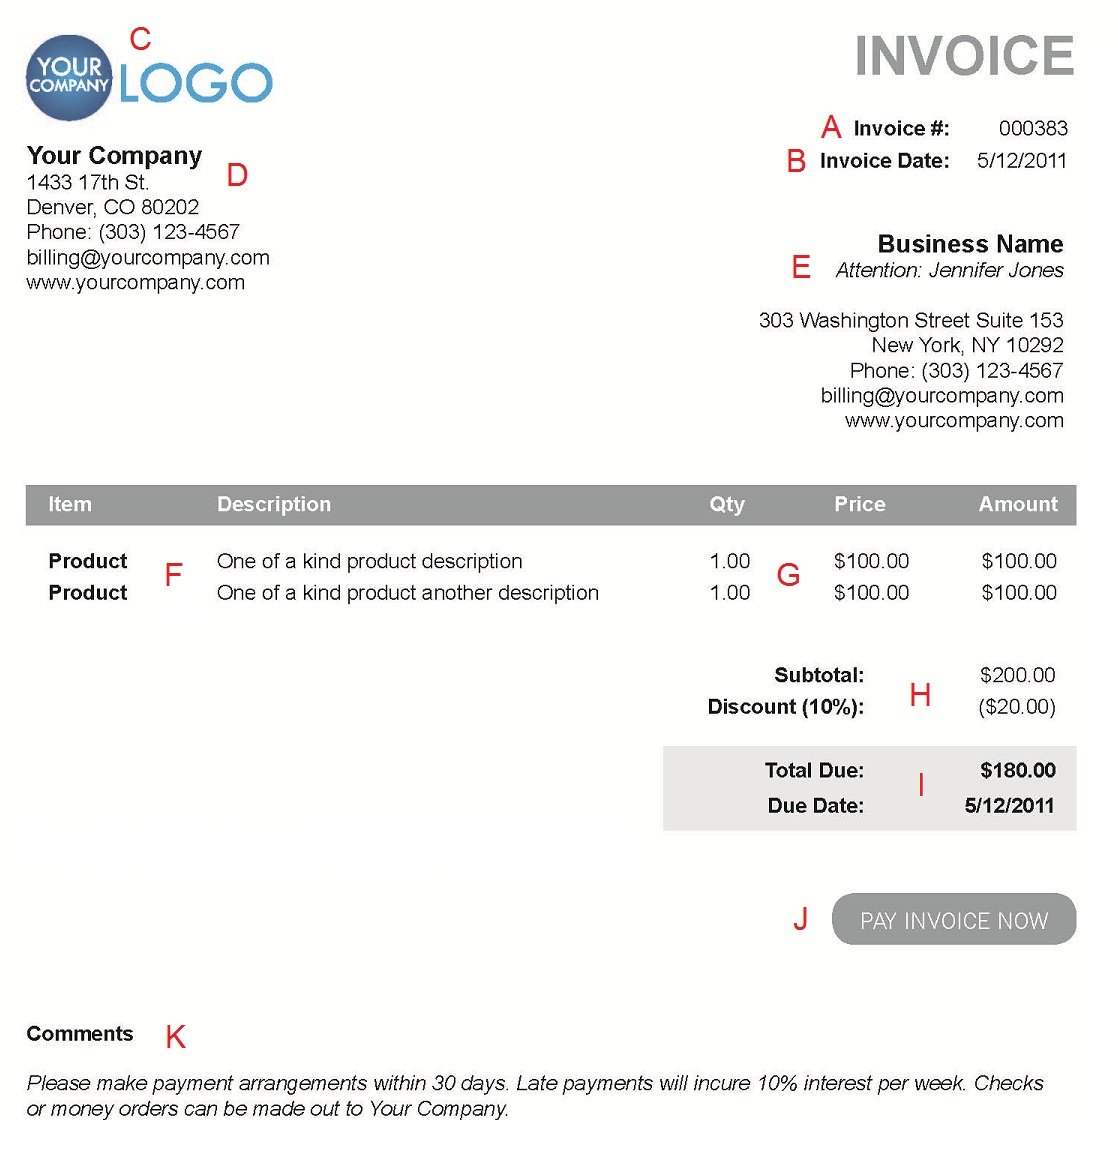 Floobydustus  Surprising The  Different Sections Of An Electronic Payment Invoice With Luxury A  With Adorable Blank Receipt Template Pdf Also Receipt At Depot In Addition Rent Receipt Excel And Handheld Receipt Scanner As Well As Receipts Box Additionally Westjet Eticket Receipt From Paysimplecom With Floobydustus  Luxury The  Different Sections Of An Electronic Payment Invoice With Adorable A  And Surprising Blank Receipt Template Pdf Also Receipt At Depot In Addition Rent Receipt Excel From Paysimplecom